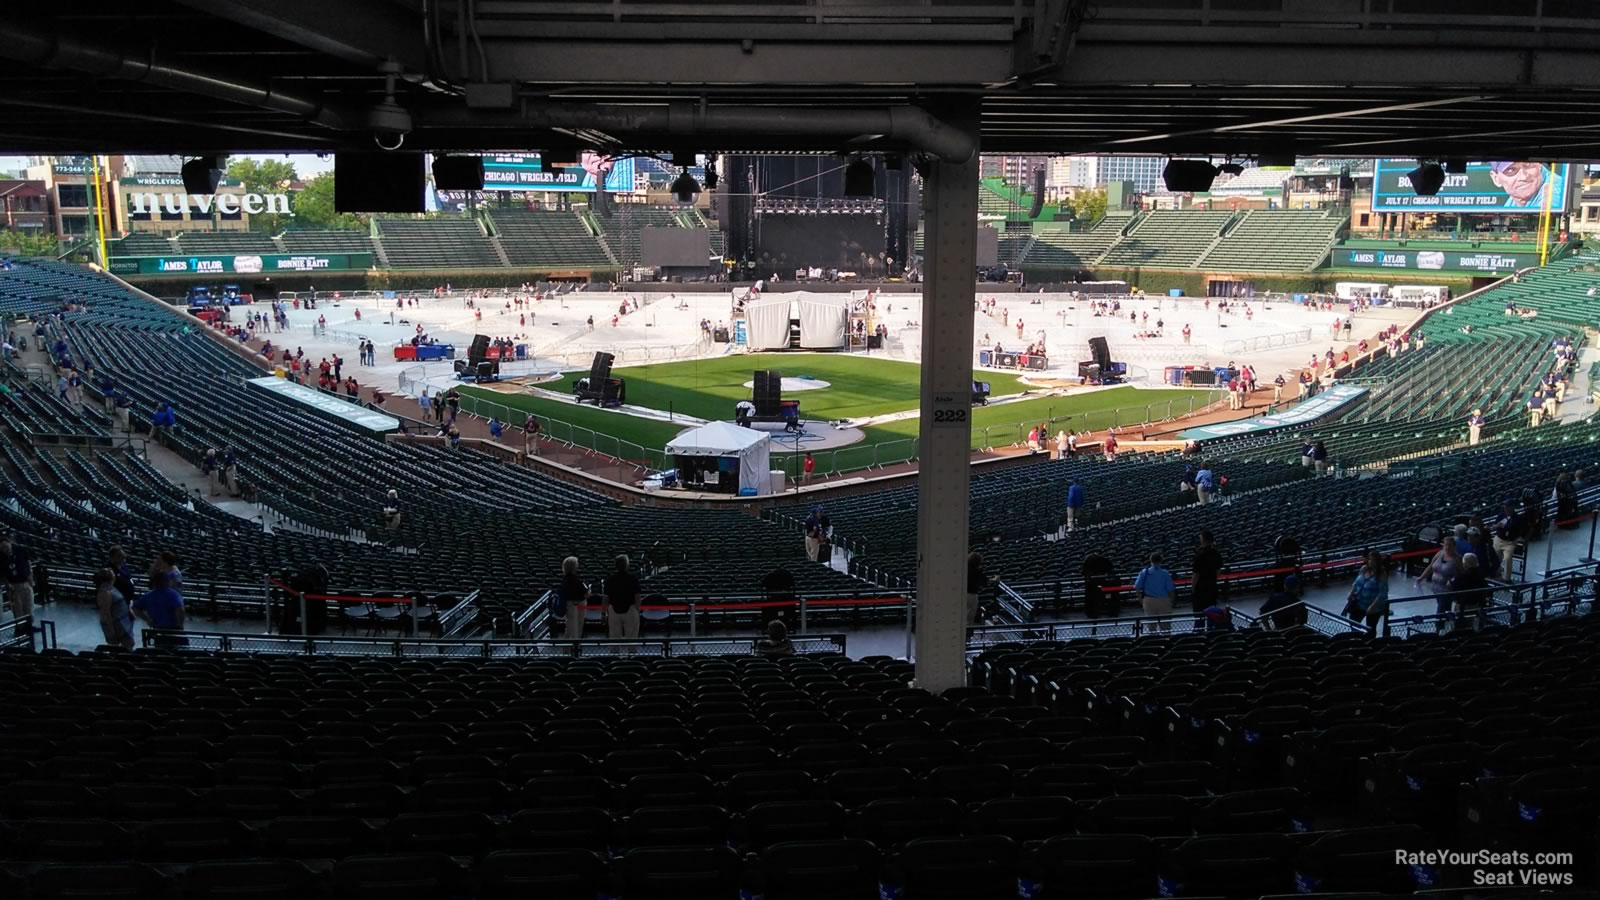 Wrigley Field Section 222 Concert Seating - RateYourSeats.com